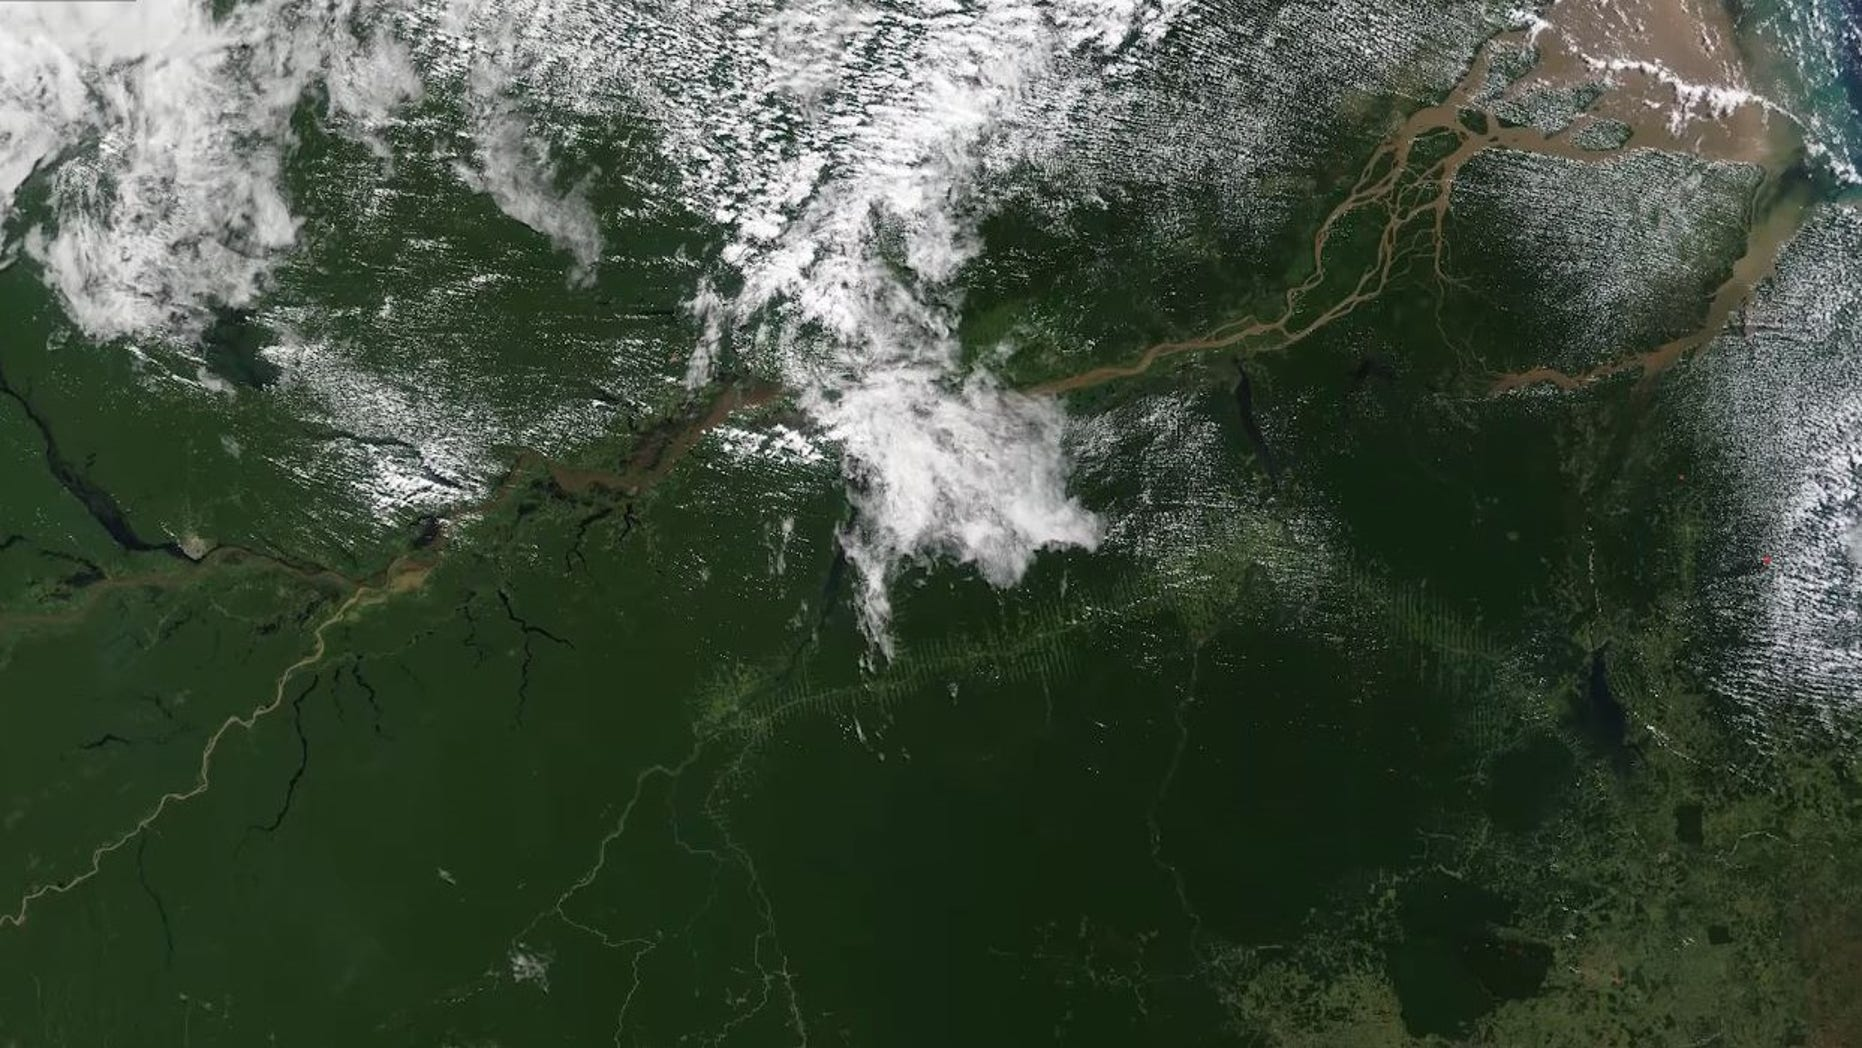 NASA's Terra satellite takes an image of the Amazon basin in South America, and observes its vegetation.